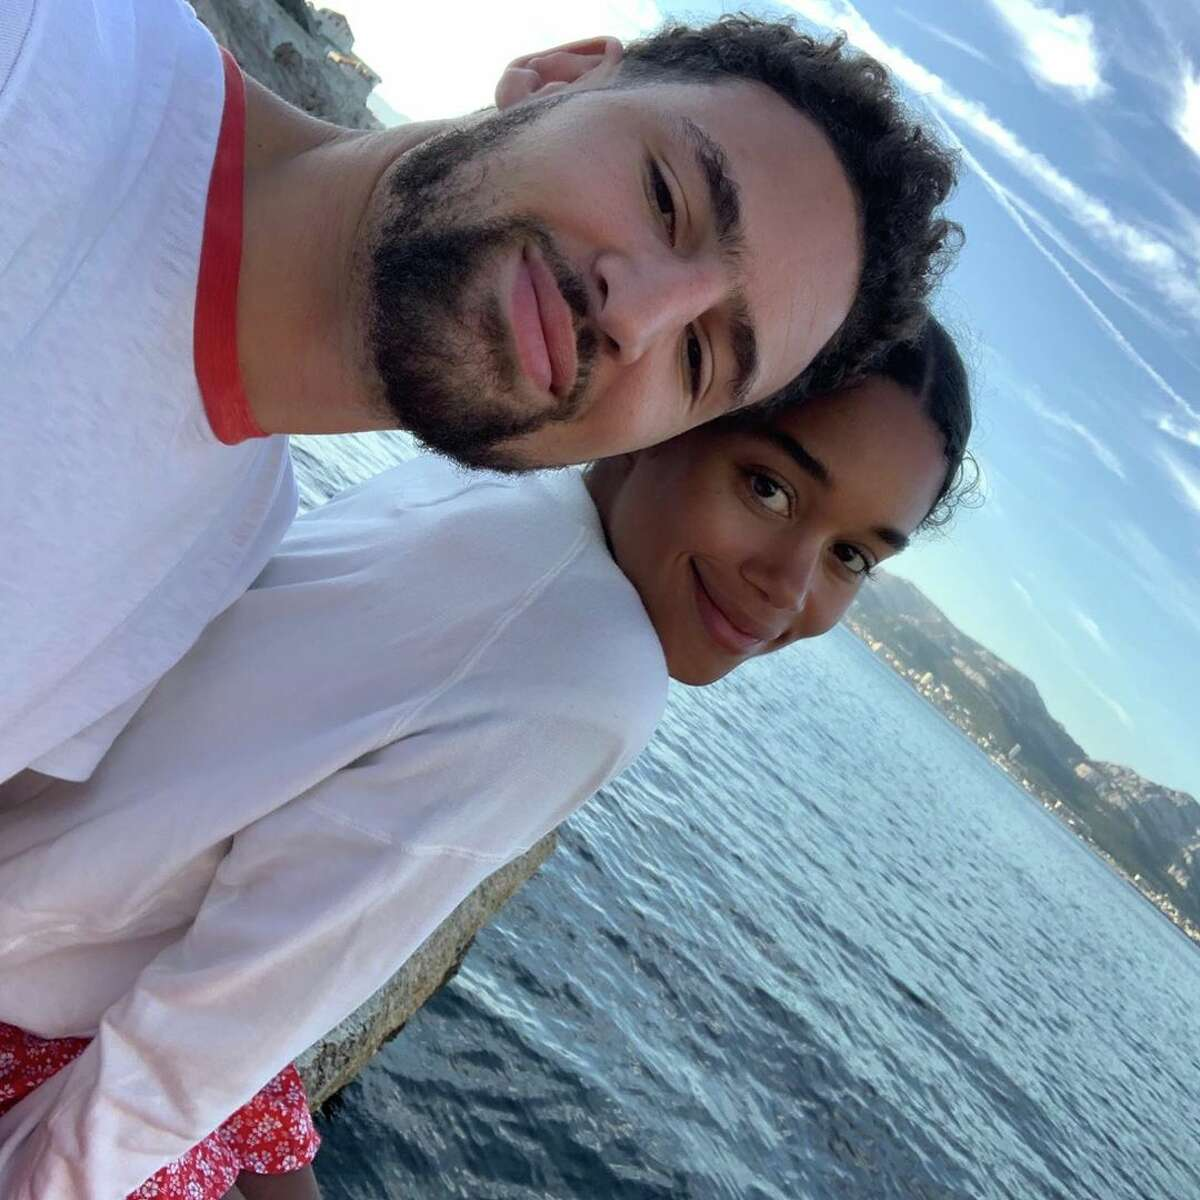 Klay Thompson took a tour of France with his girlfriend,